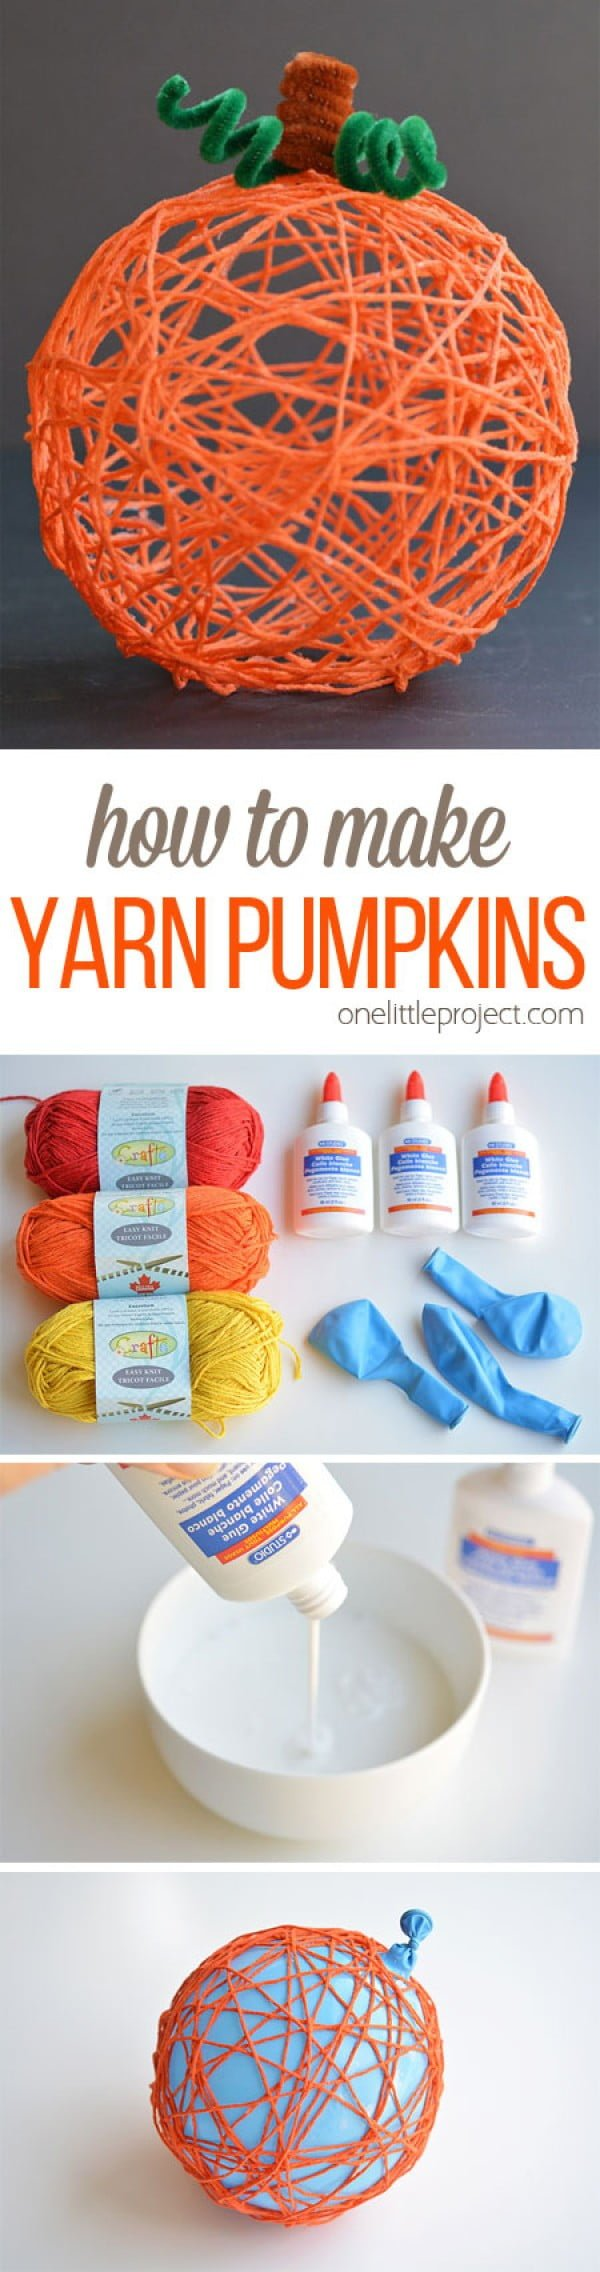 Check out how to make easy DIY yarn pumpkins for easy Thanksgiving decor